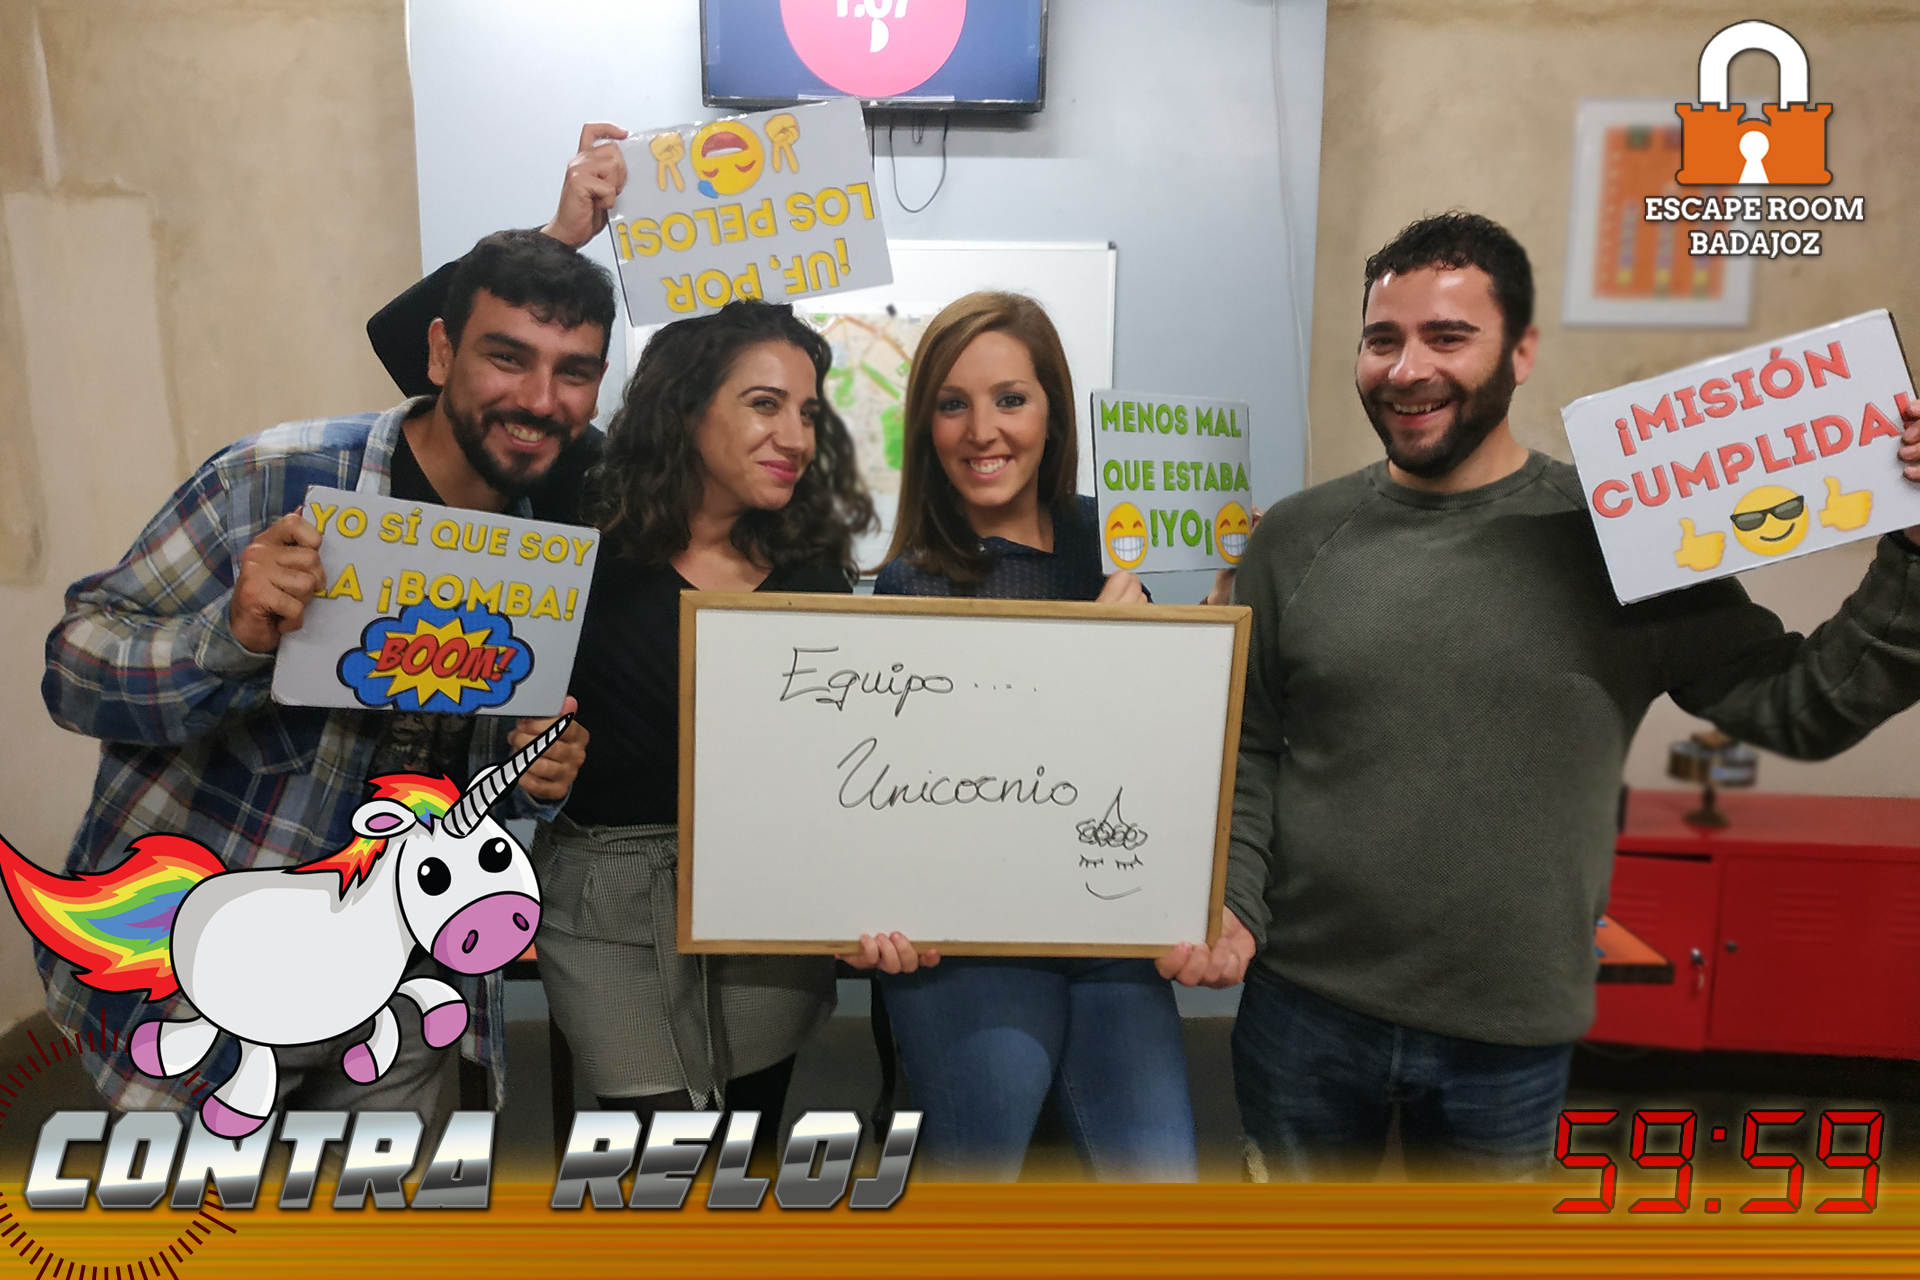 Equipo-unicornio-escape-room-badajoz